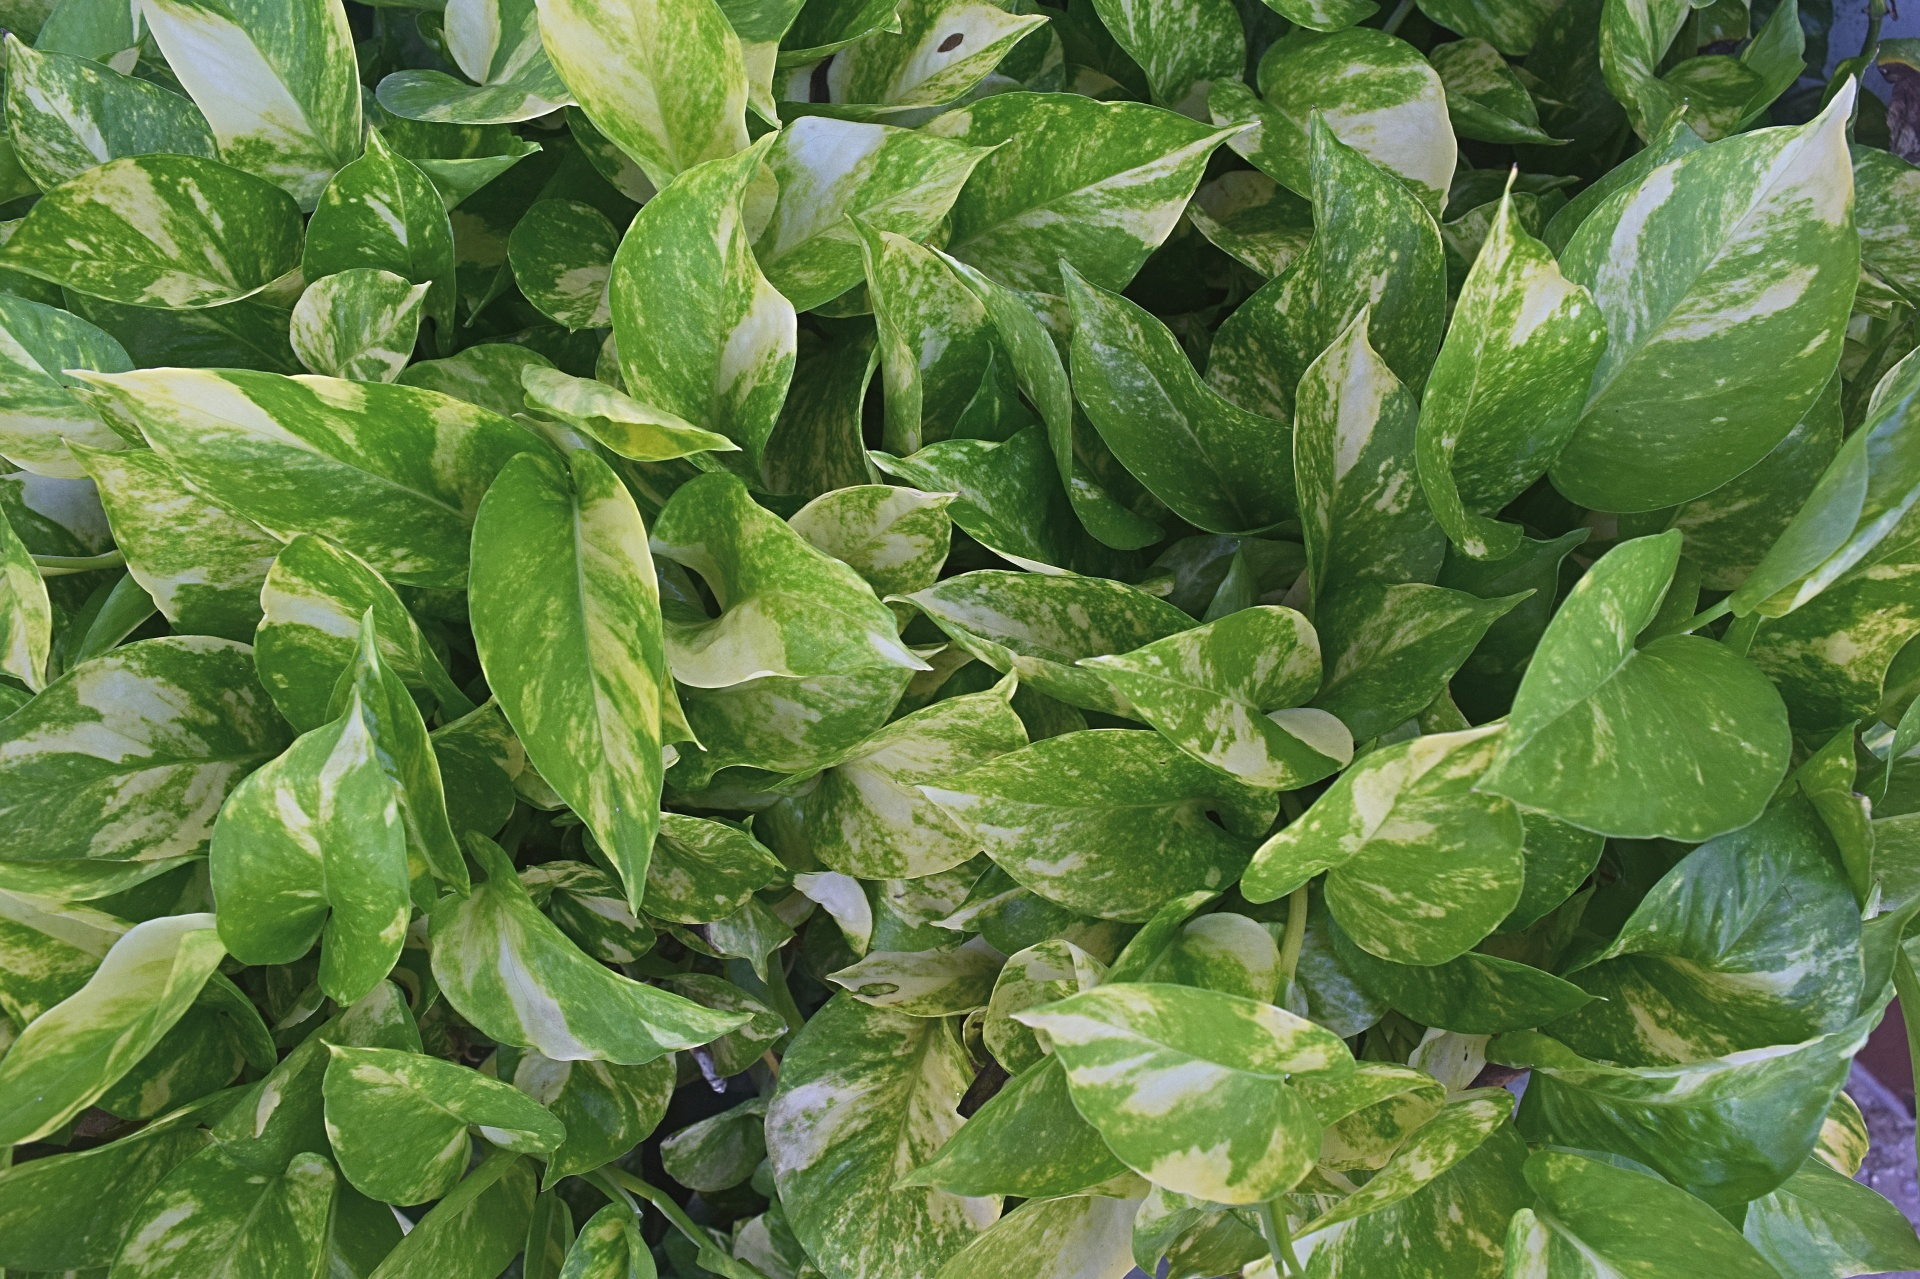 9. Pothos - Often confused with philodendron, this low-maintenance vine is one of the most versatile plants. Sometimes called 'devil's ivy' it's heart shaped leaves come in an expansive selection of hues from dark green to a nearly neon yellow. Many varieties also have marbled variegation from yellow to white to light green. They look great as a mounded tabletop plant, in a hanging basket, and can even be trained to grow upright on a pole. They tolerate low light but brighter conditions will make variegated varieties more defined.Light: Low to Bright Water: Keep moderately dry